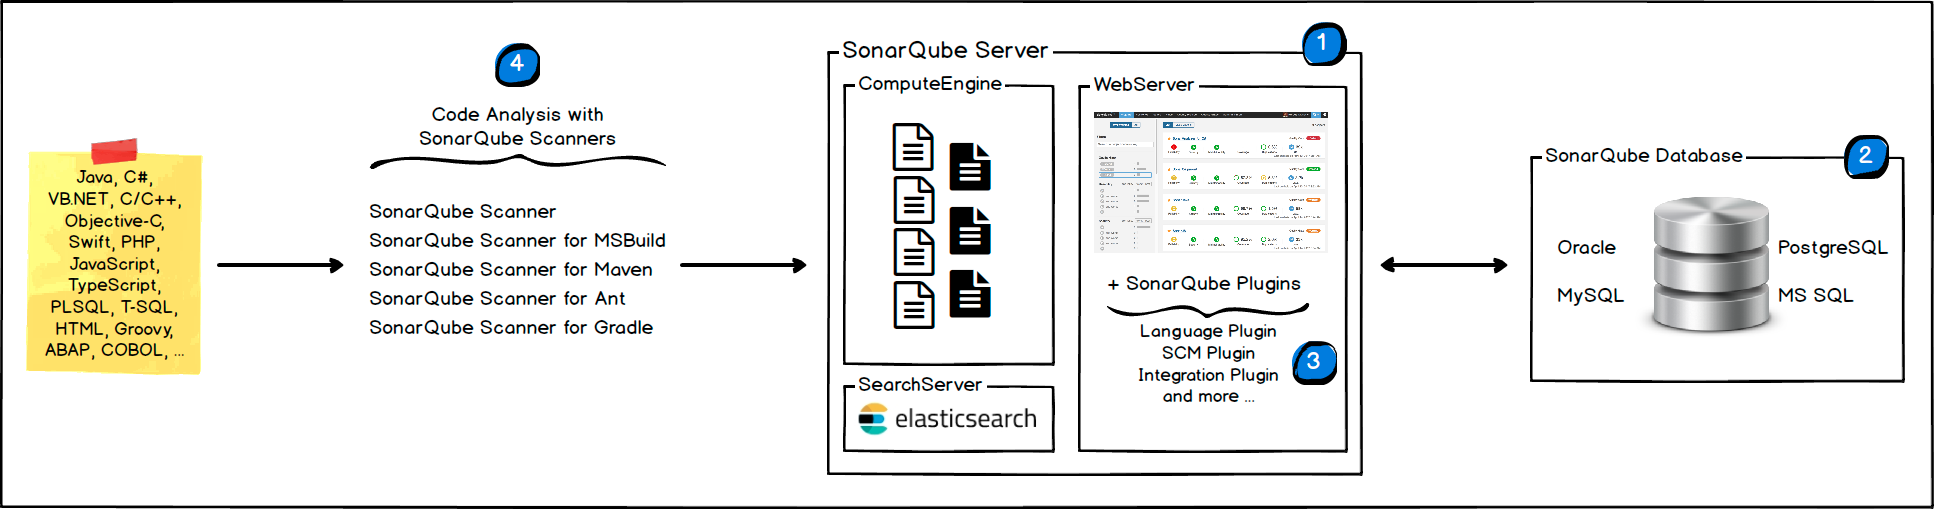 sonarqube_arch.png